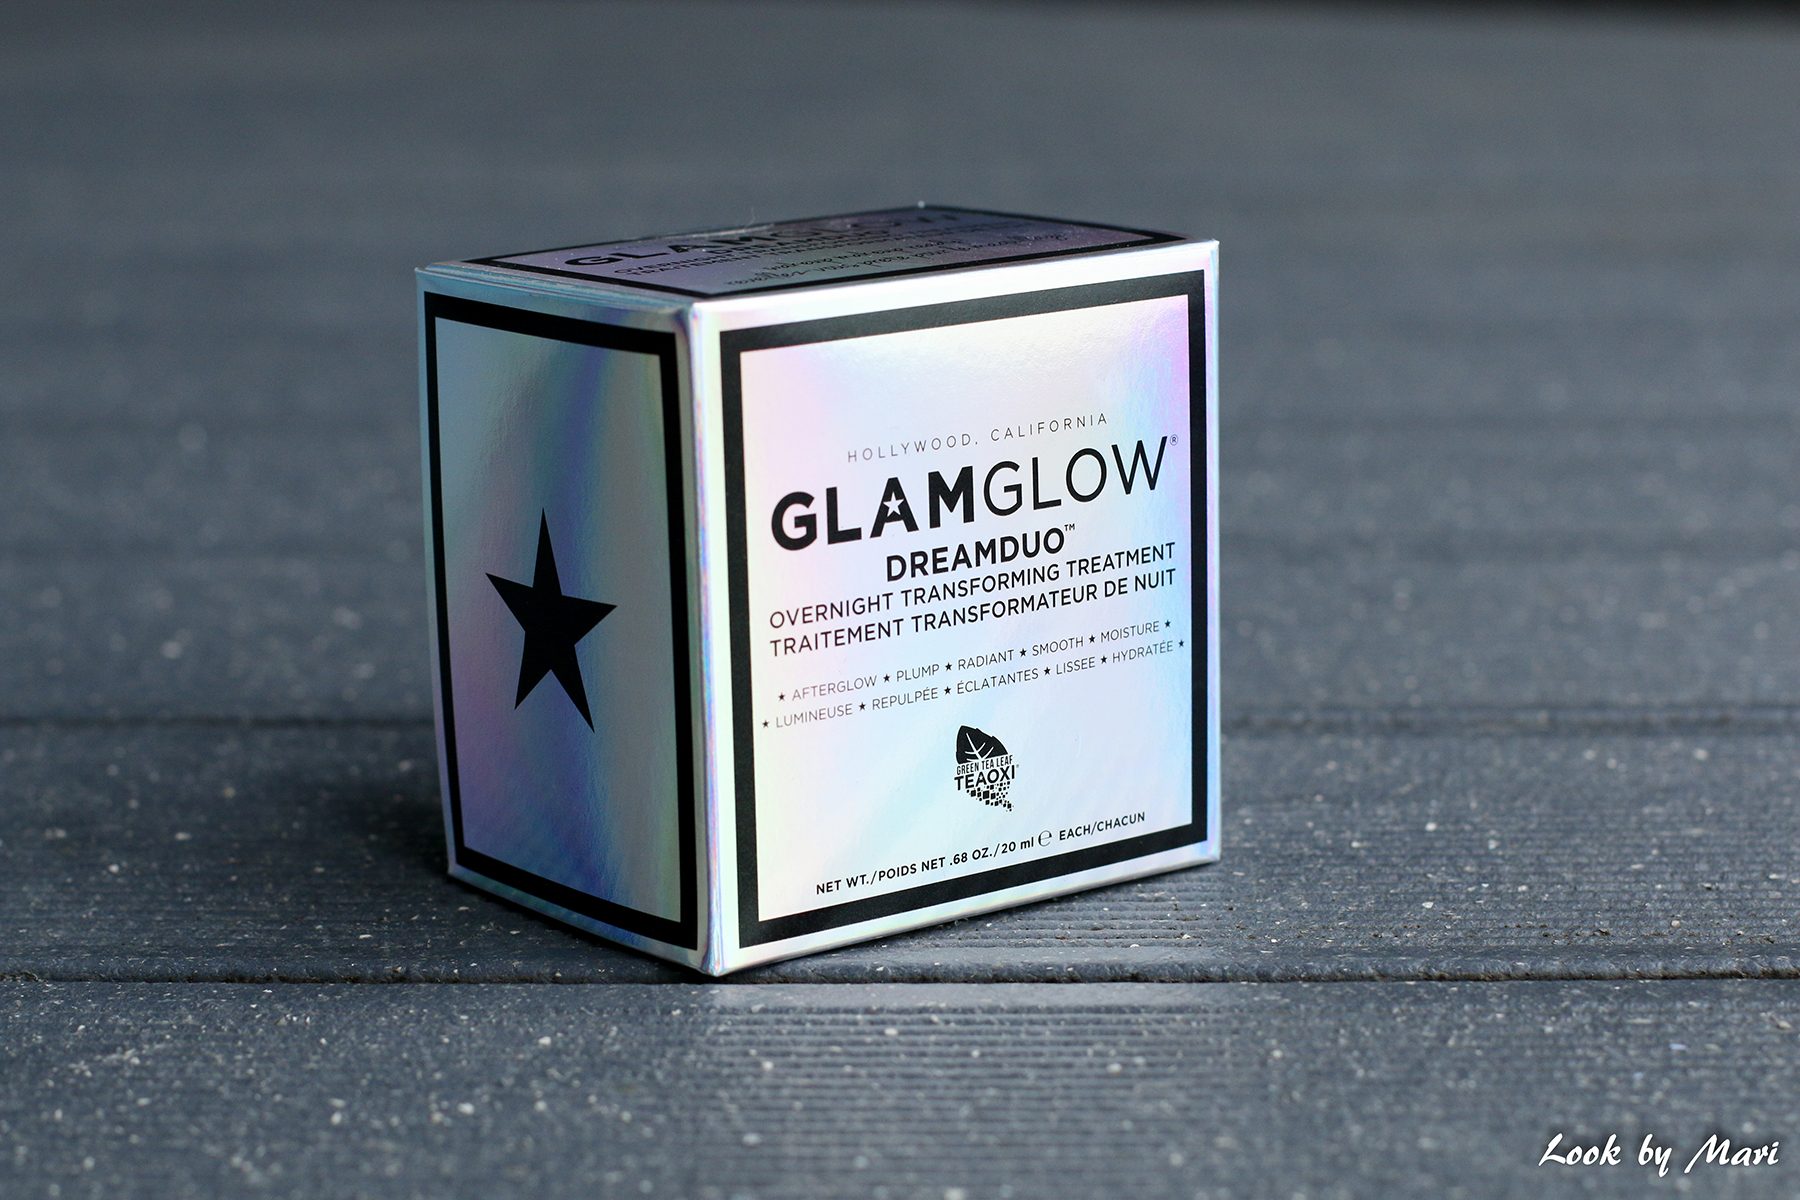 27 glamglow dreamduo overnight transforming treatment review blog